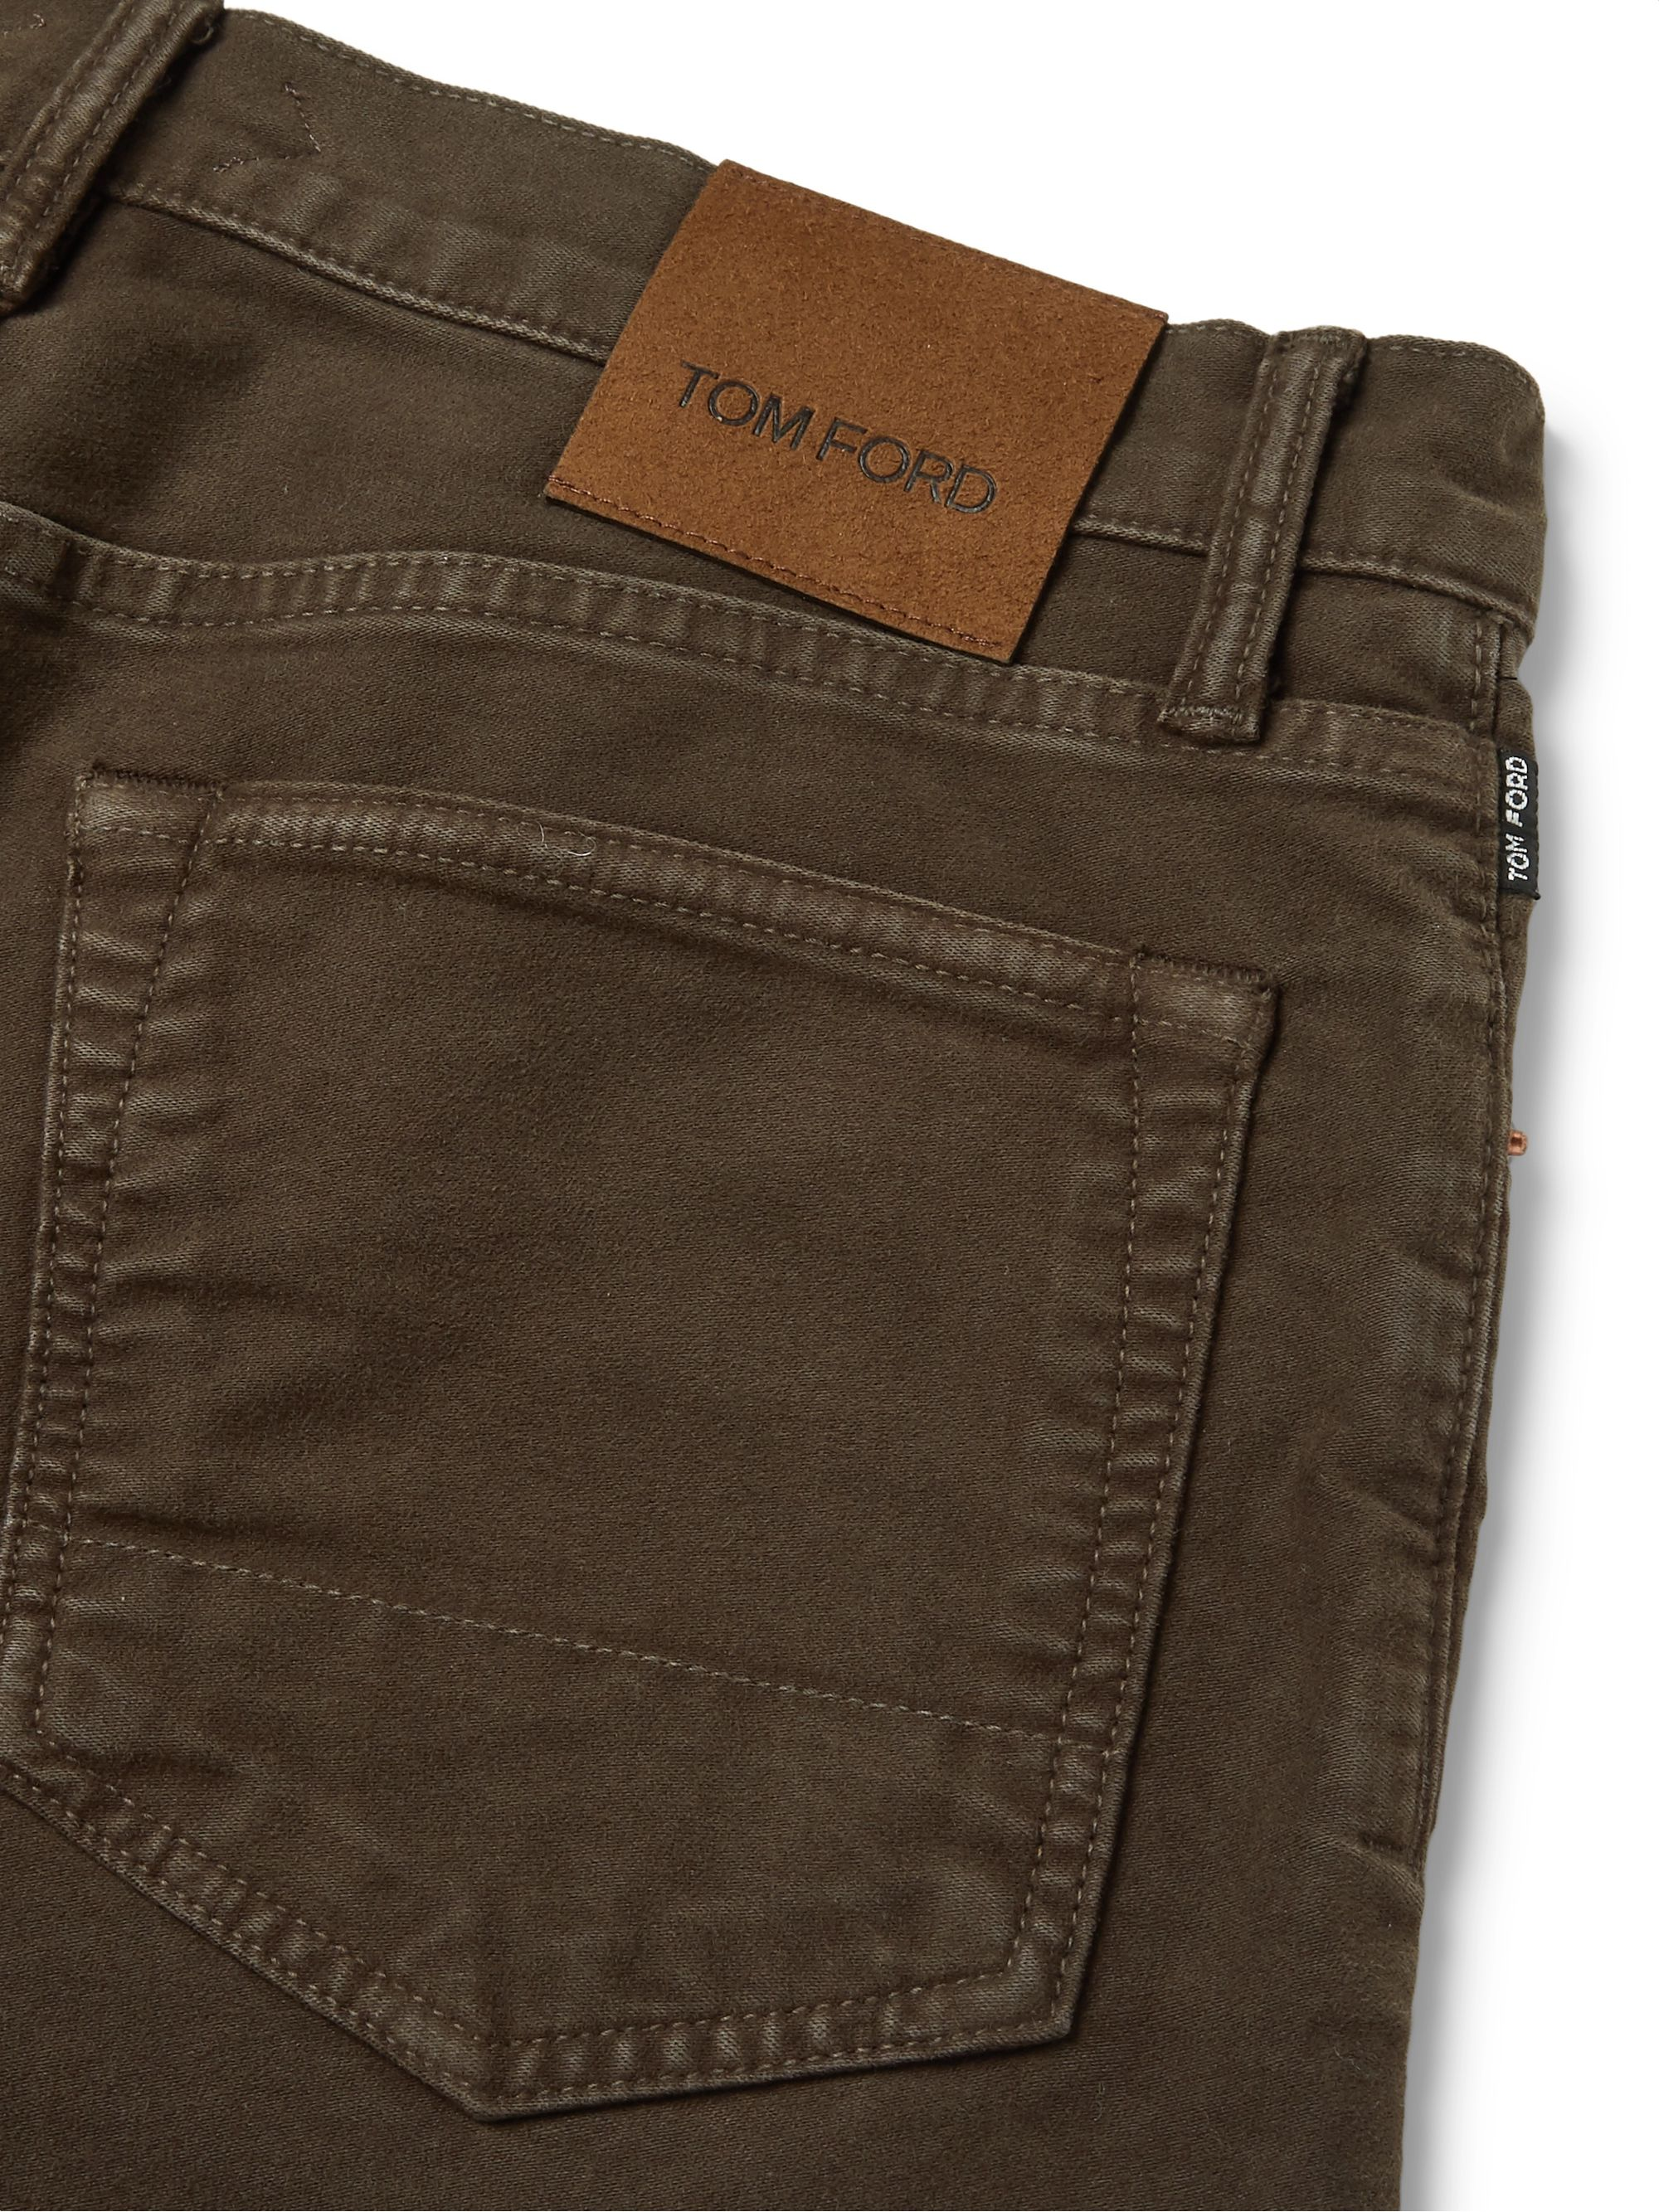 TOM FORD Slim-Fit Cotton-Blend Moleskin Trousers